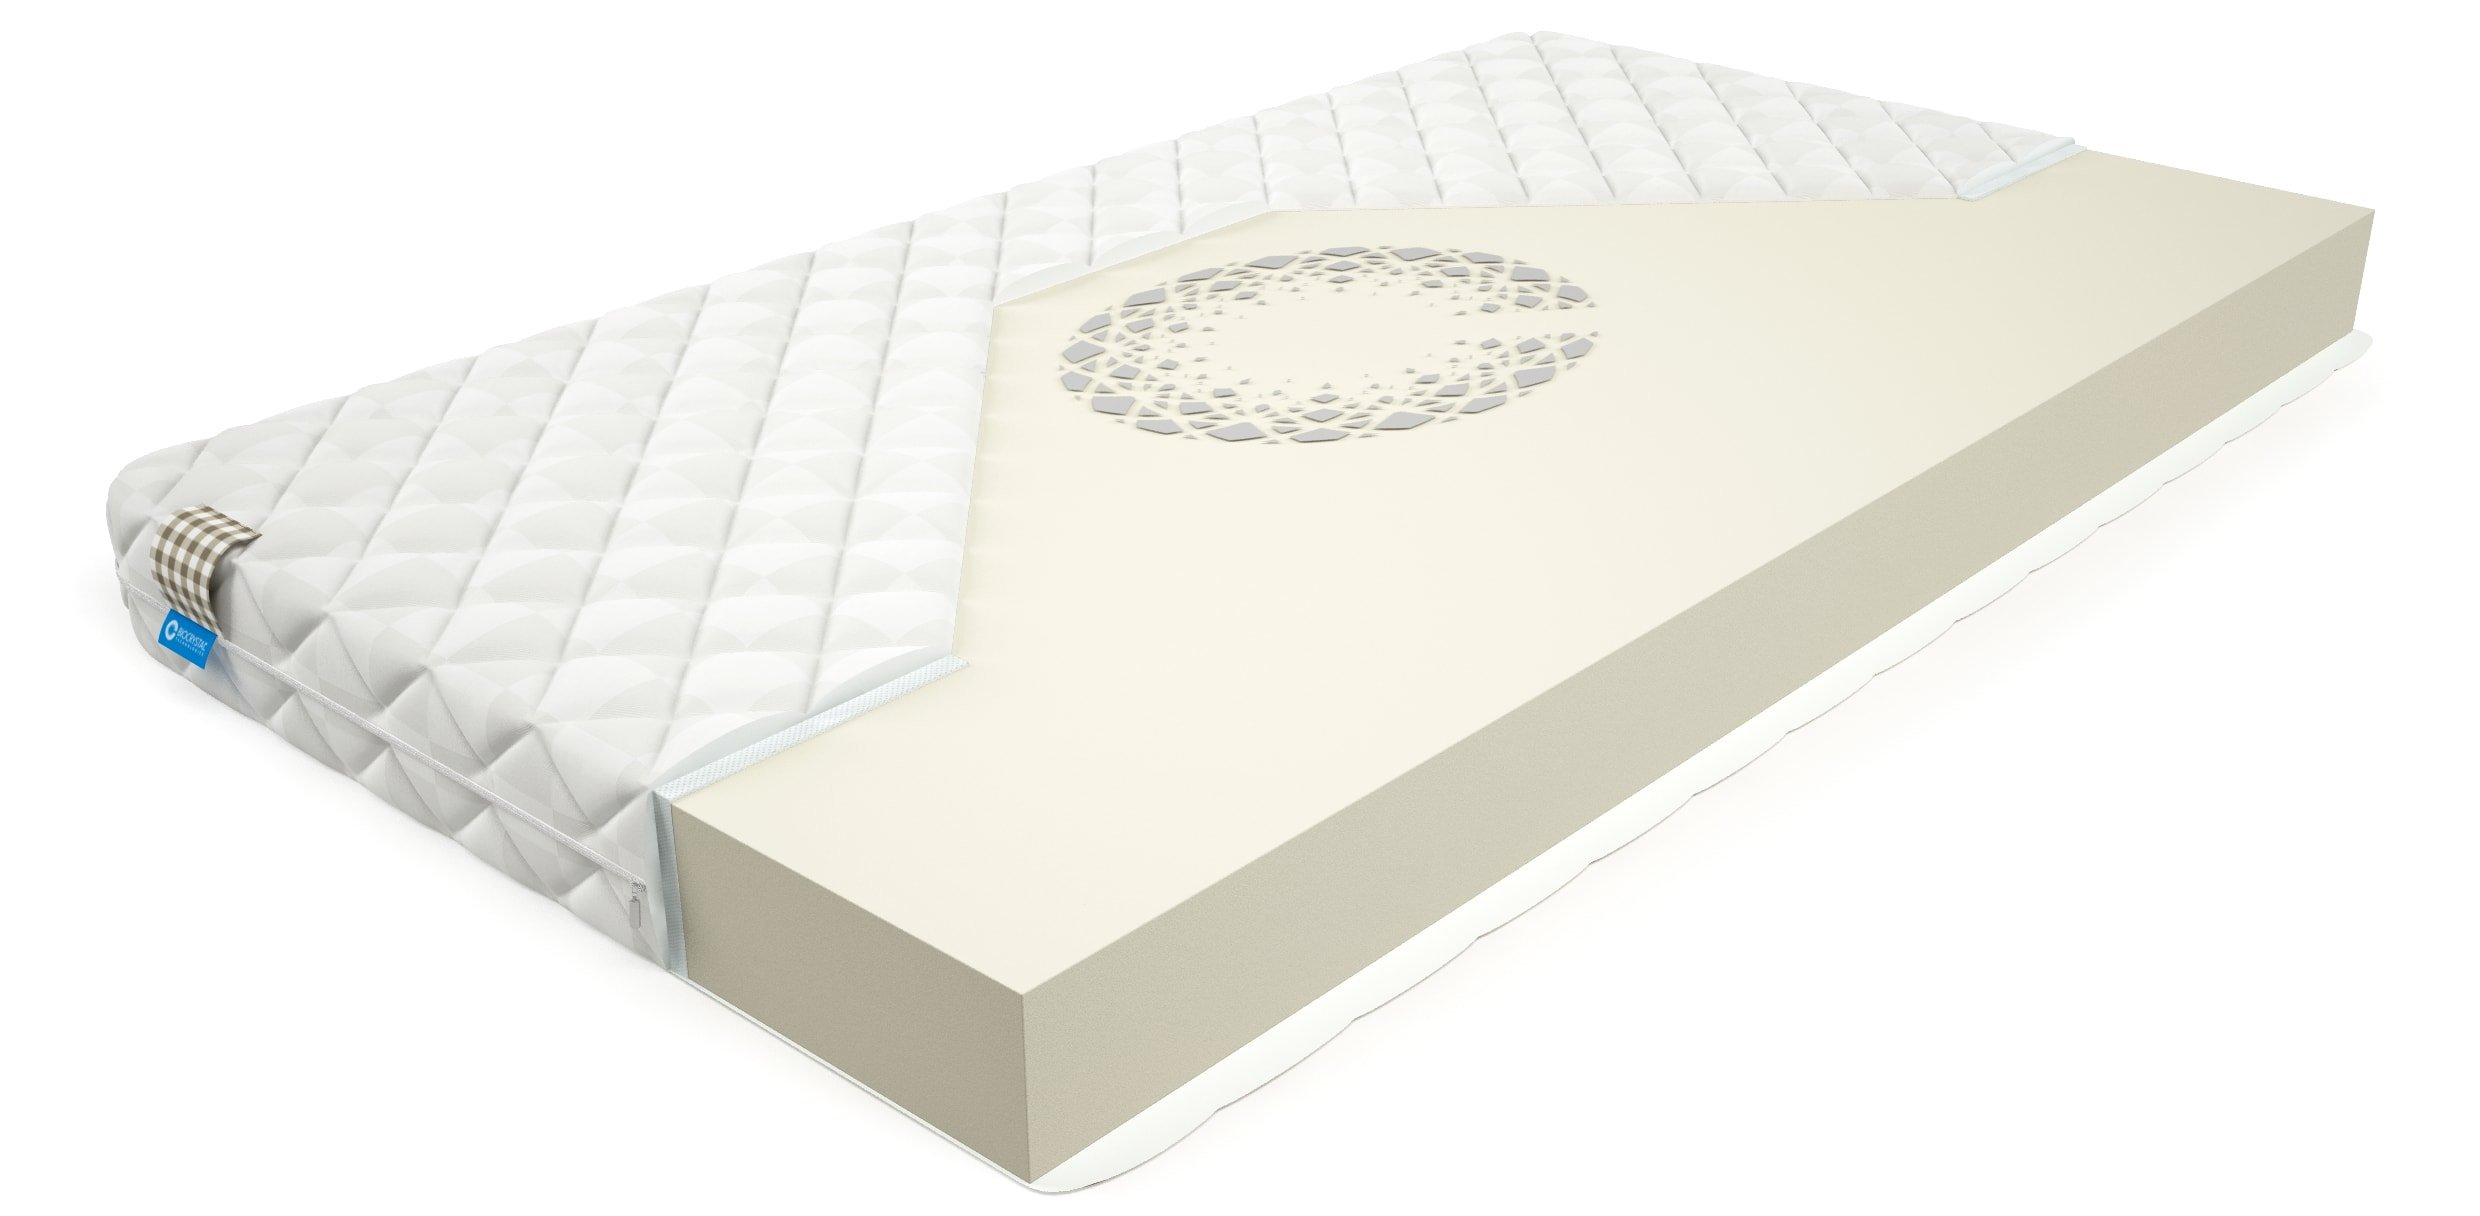 Матрас Mr.Mattress BioCrystal Compact L 90x190